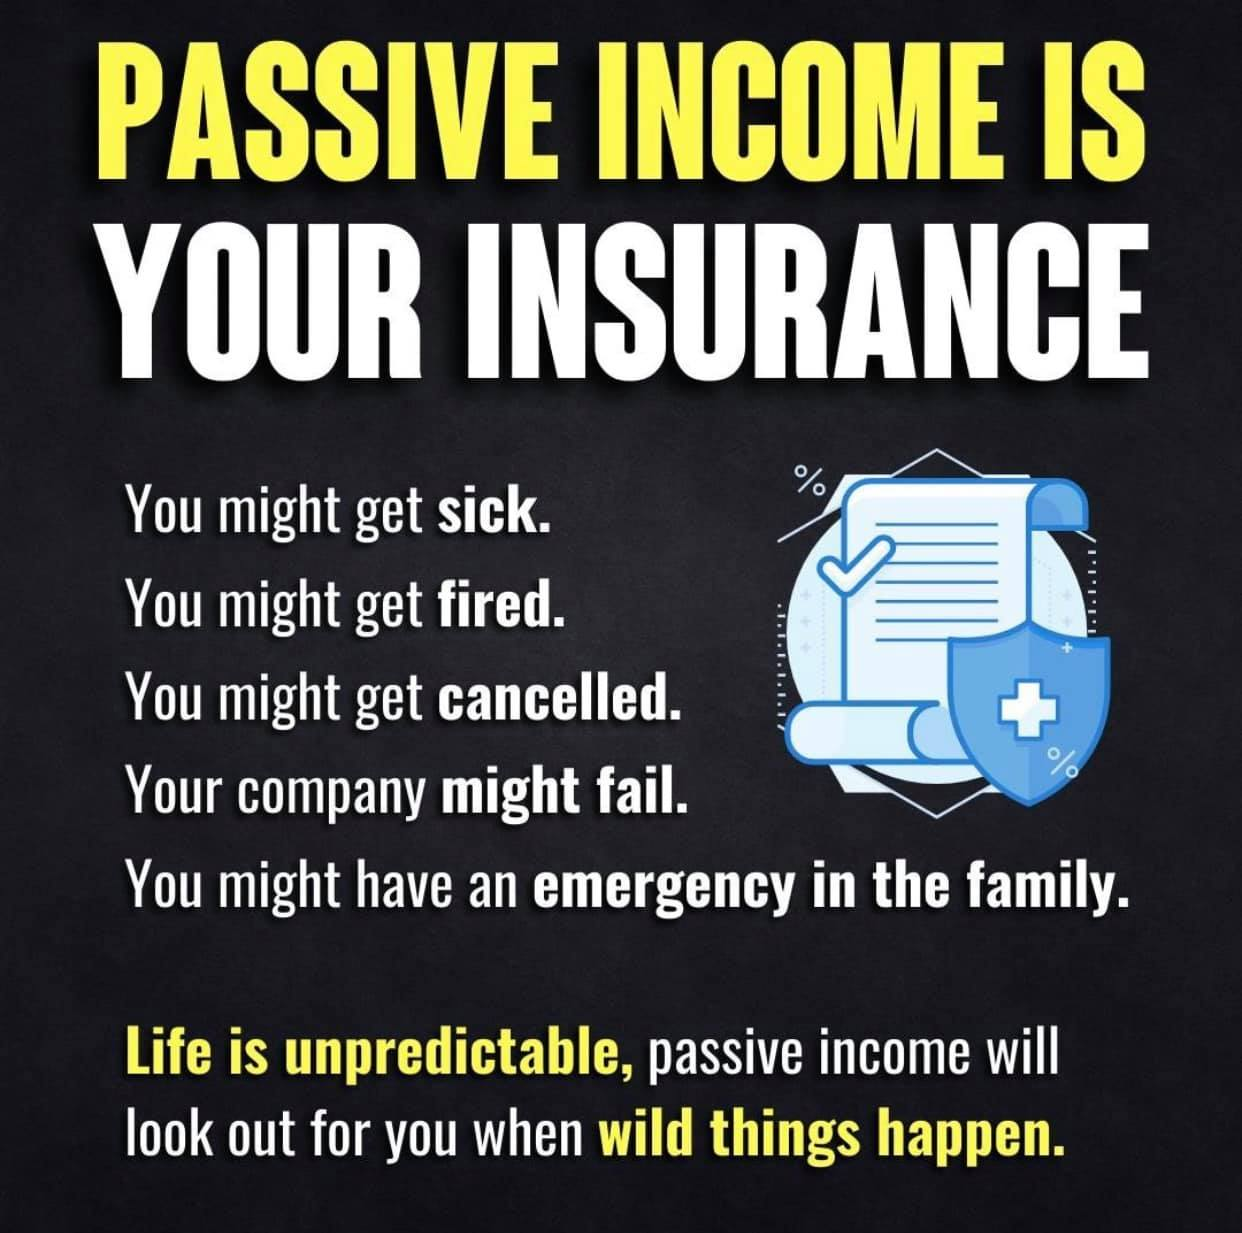 PASSIVE INCOME IS YOUR INSURANCE [1242*1233]